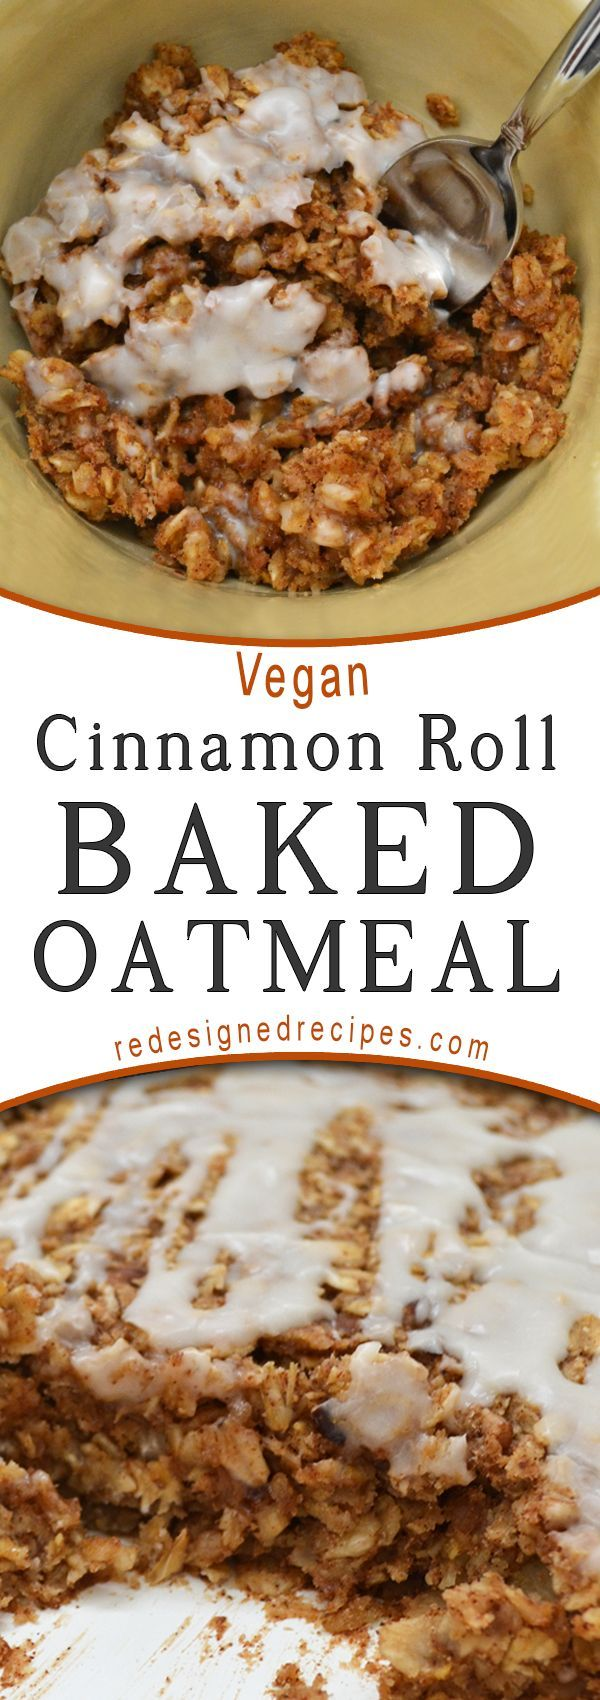 Vegan Cinnamon Roll Baked Oatmeal - Redesigned Recipes